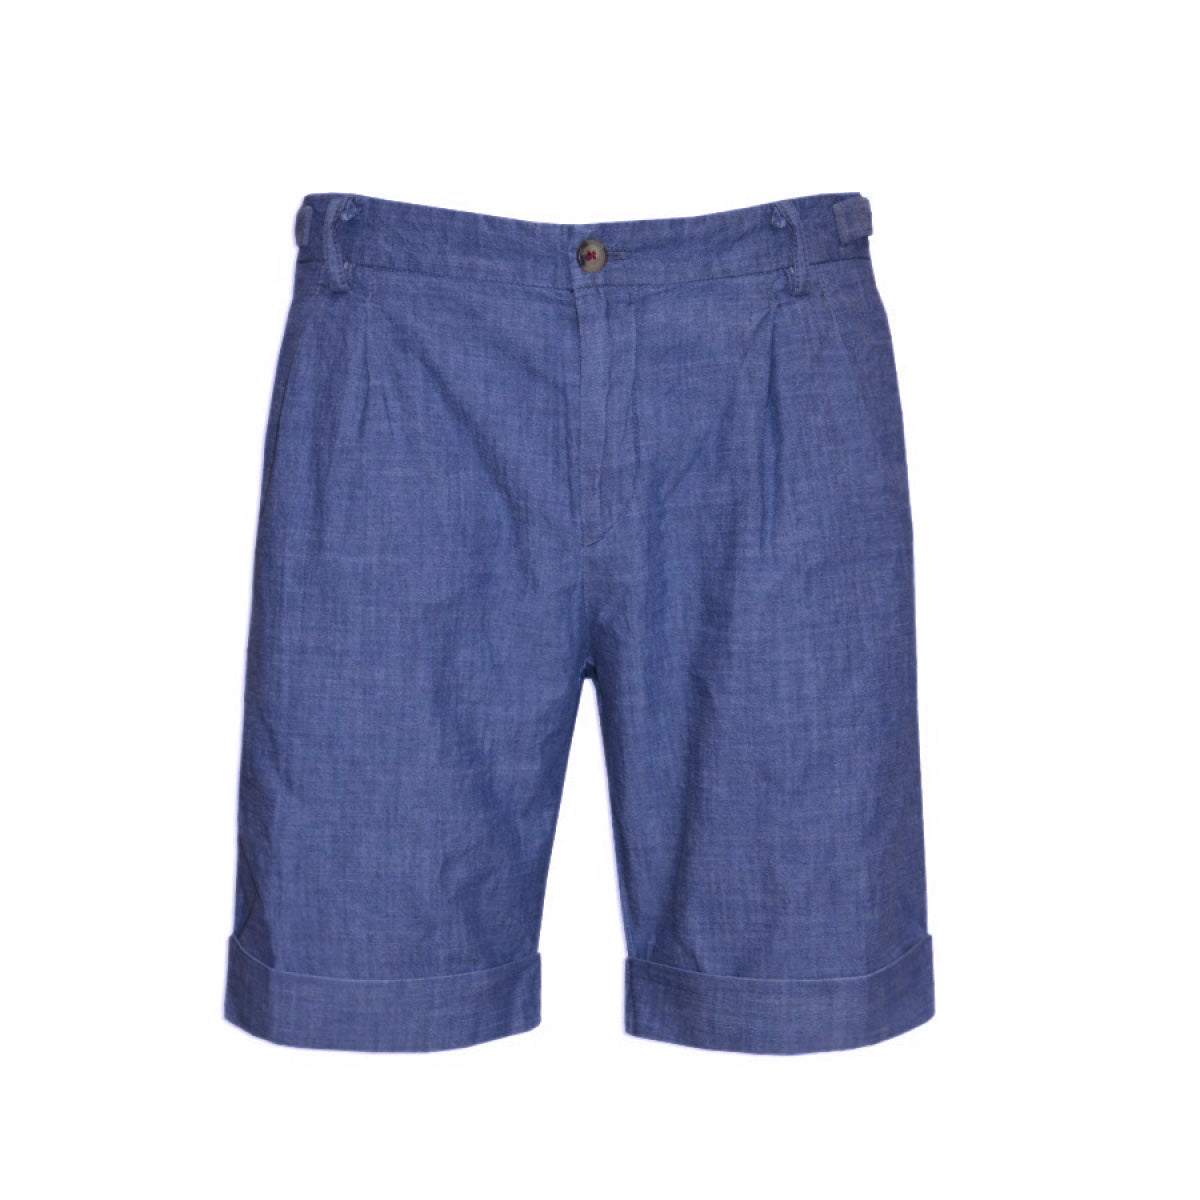 Bermuda-in-Lino-Cotone-Chambray